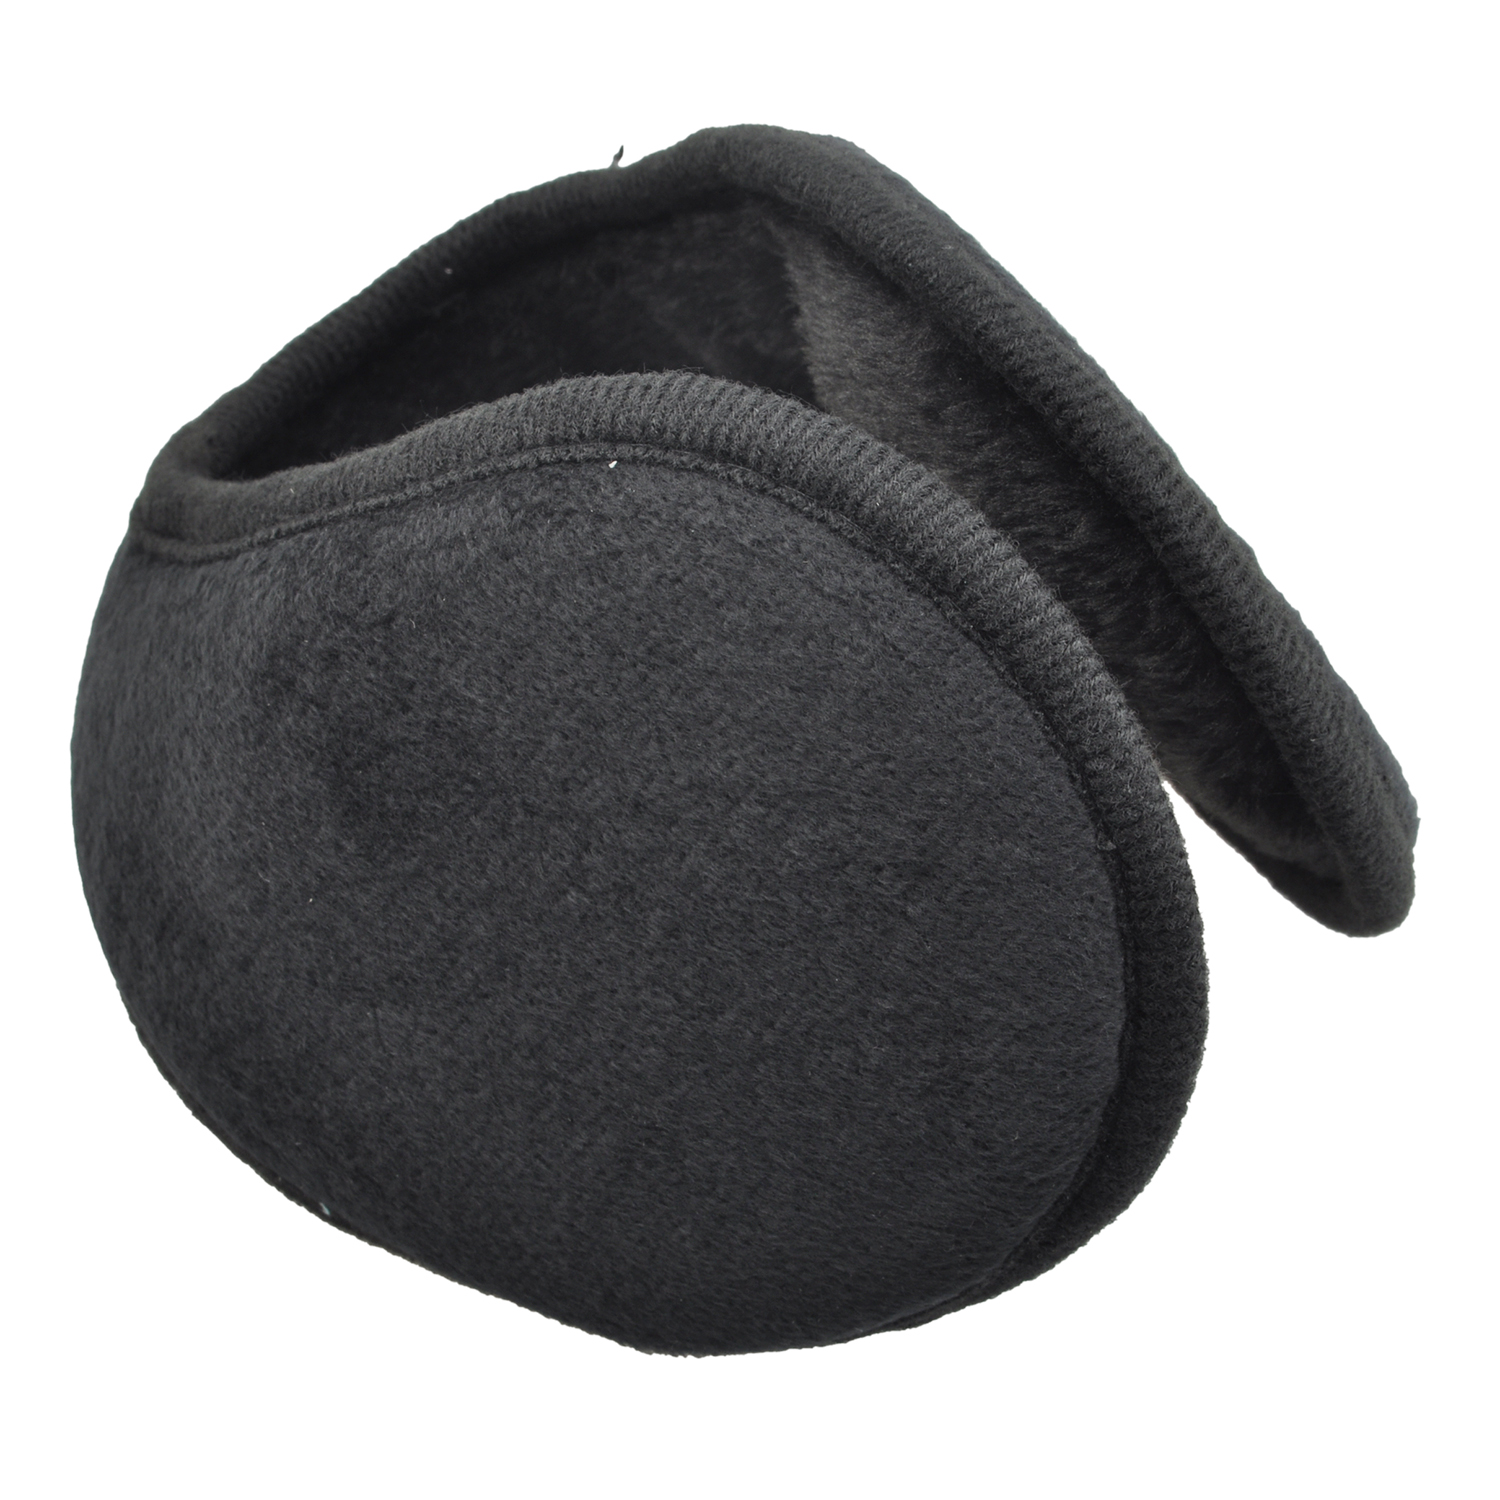 Verwong Black Men Women Soft Plush Covered Pads Wrap Earmuffs Ski Ear Muffs Warmers